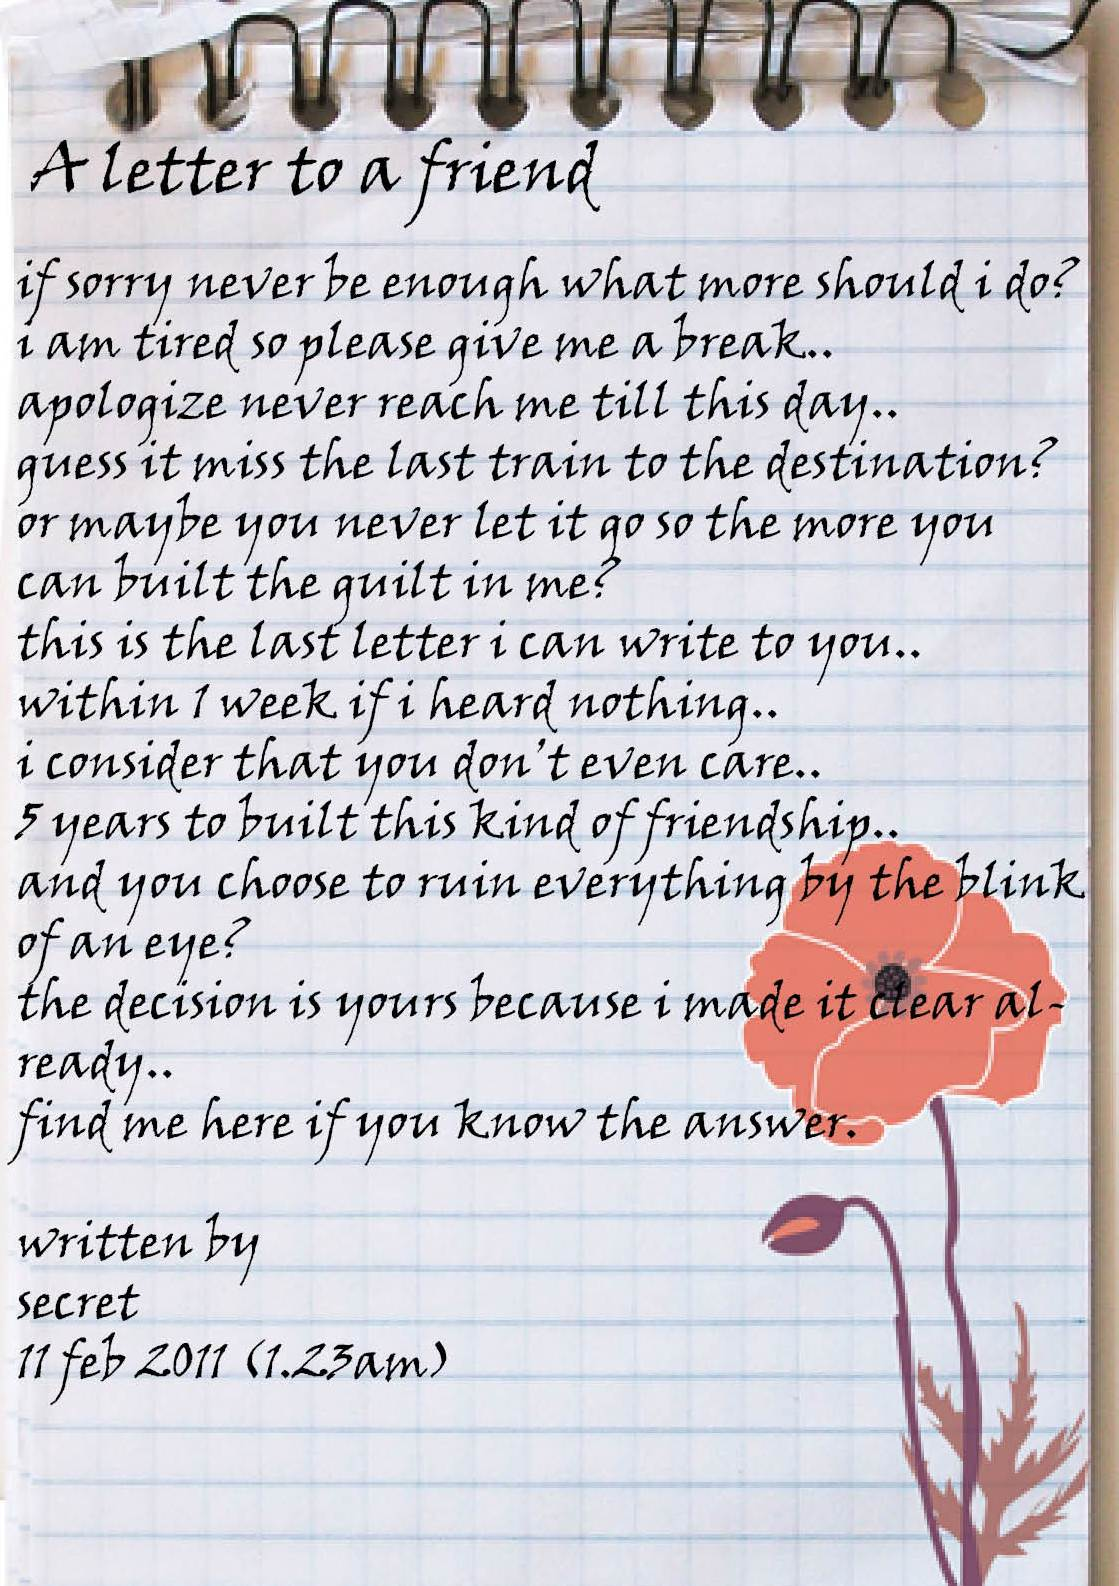 Letter to friend